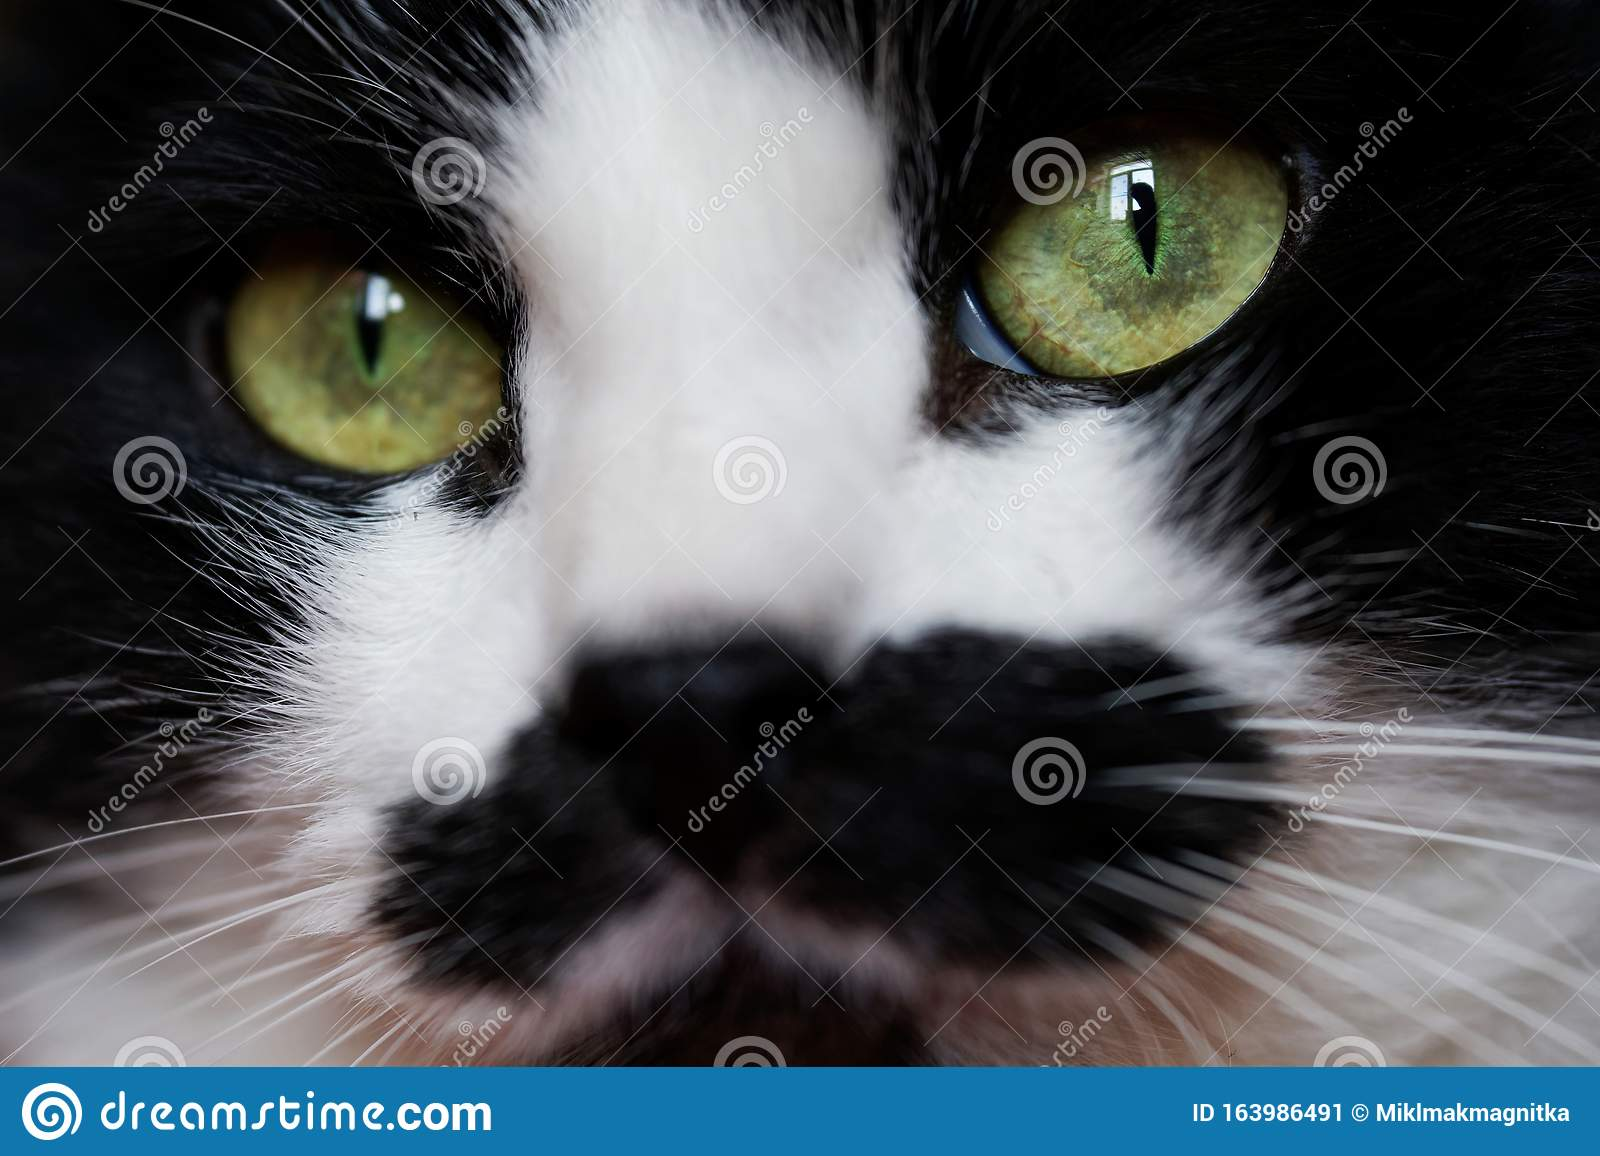 Funny Black And White Cat With An Unusual Face Looks At ...